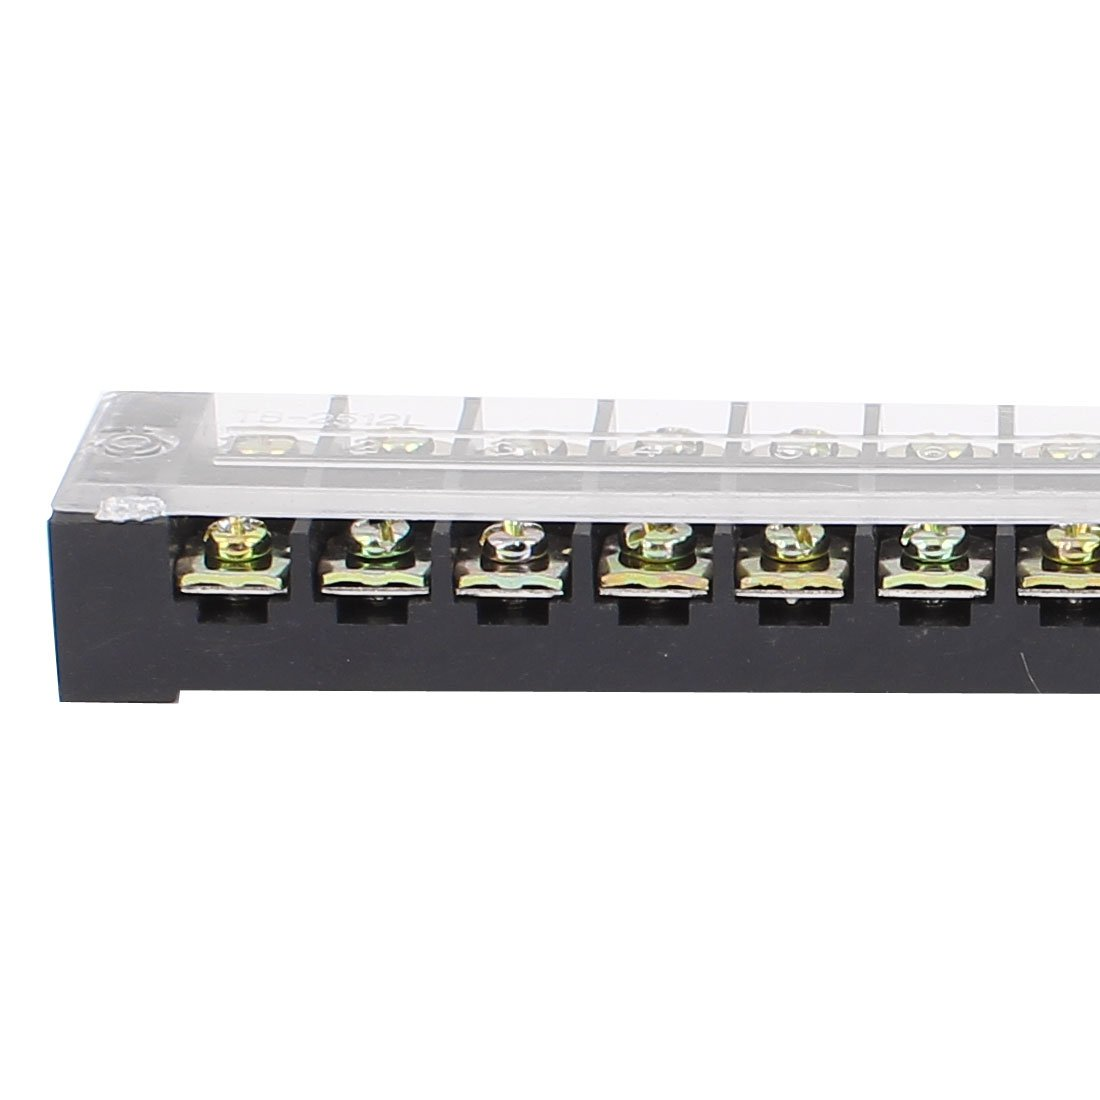 uxcell 2Pcs 600V 25A Dual Row 12 Position Covered Screw Terminal Block TB2512 a16010500ux1494